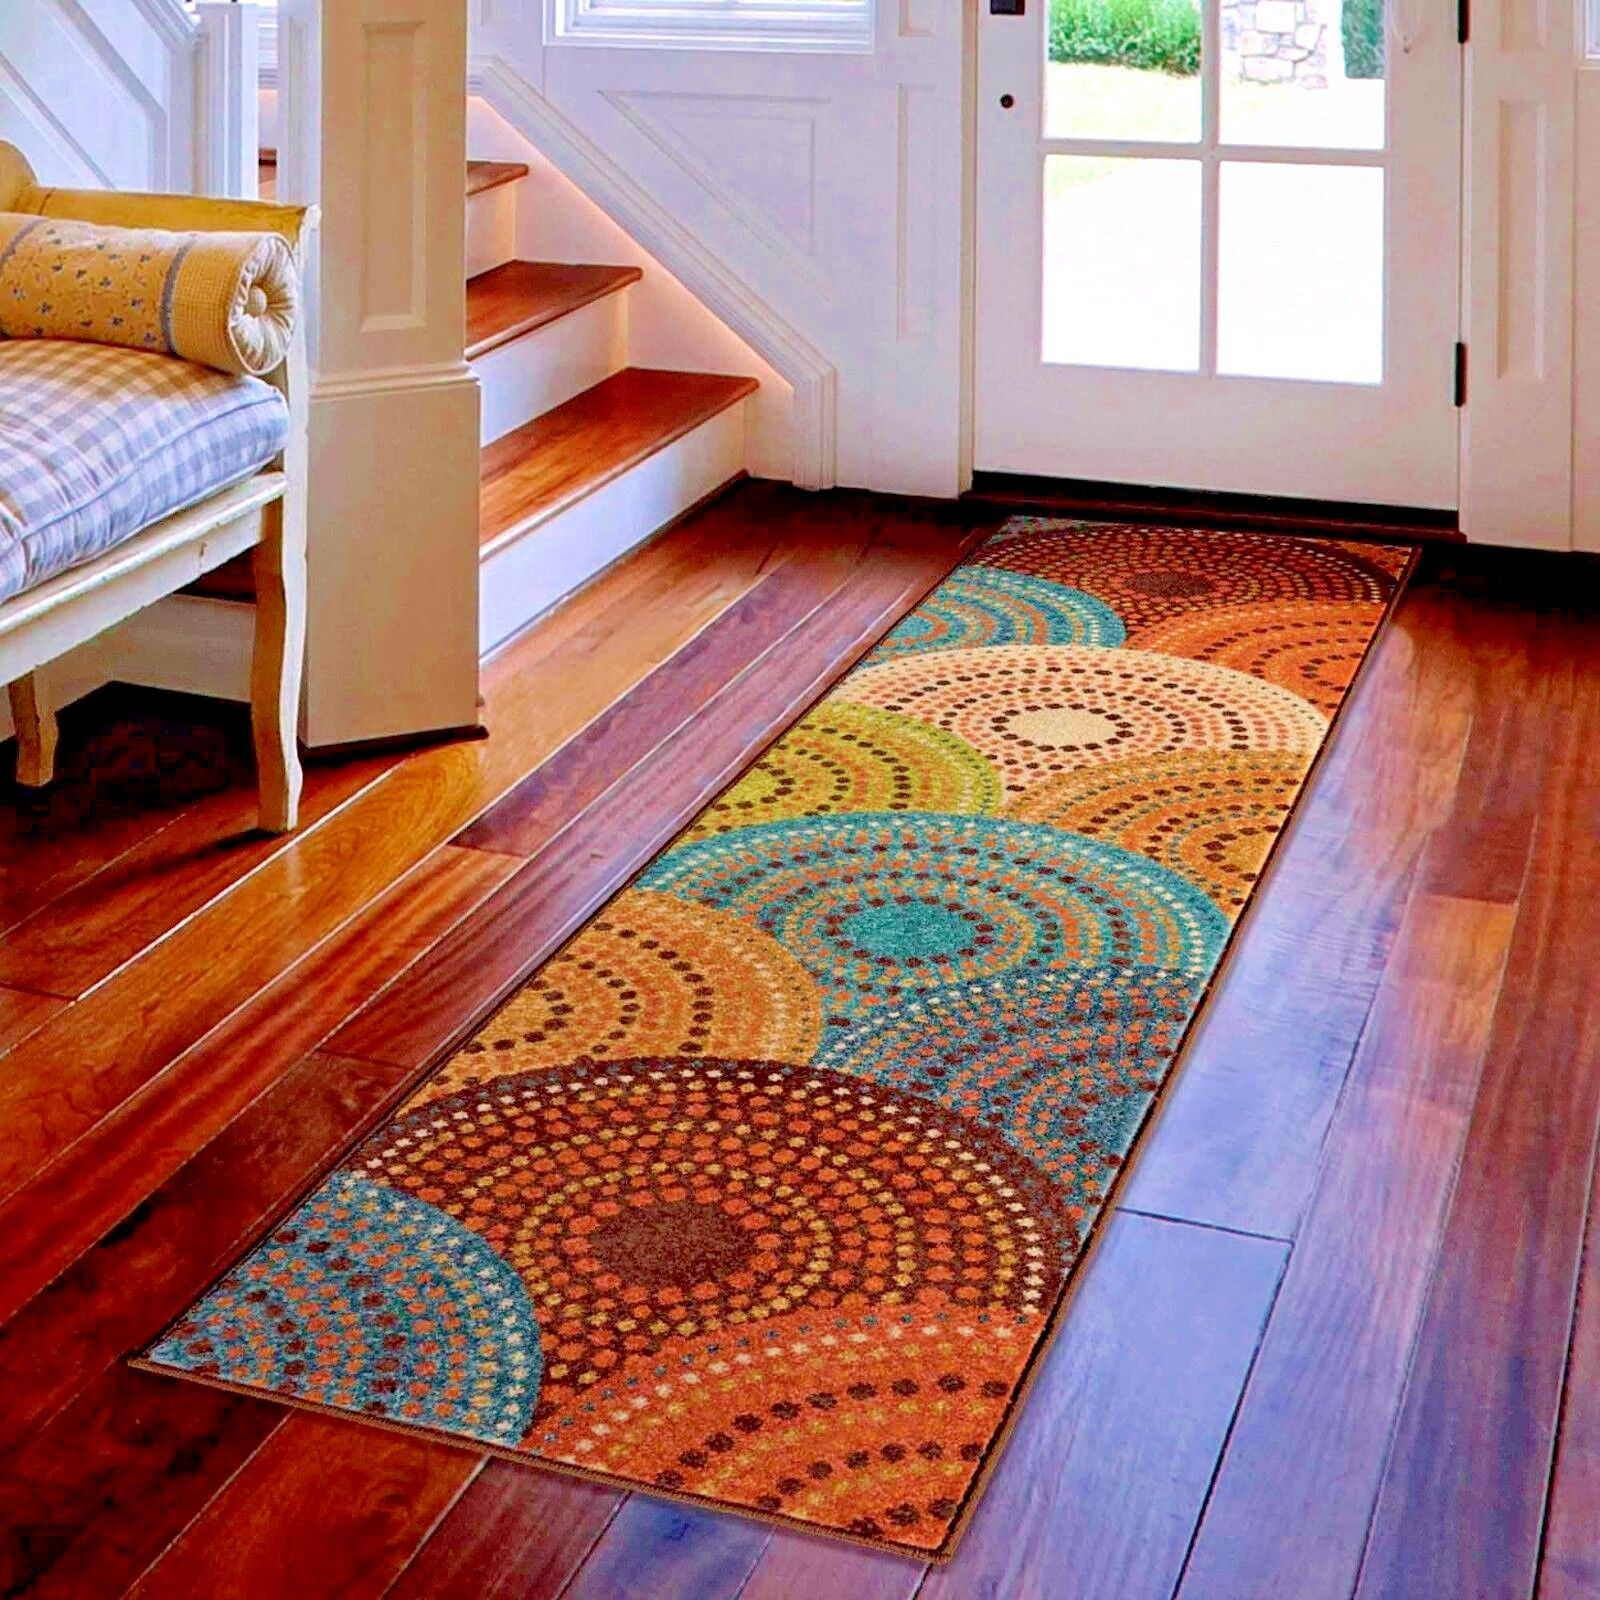 Rug Runner Rug: RUNNER RUGS CARPET RUNNERS AREA RUG RUNNERS HALLWAY COOL